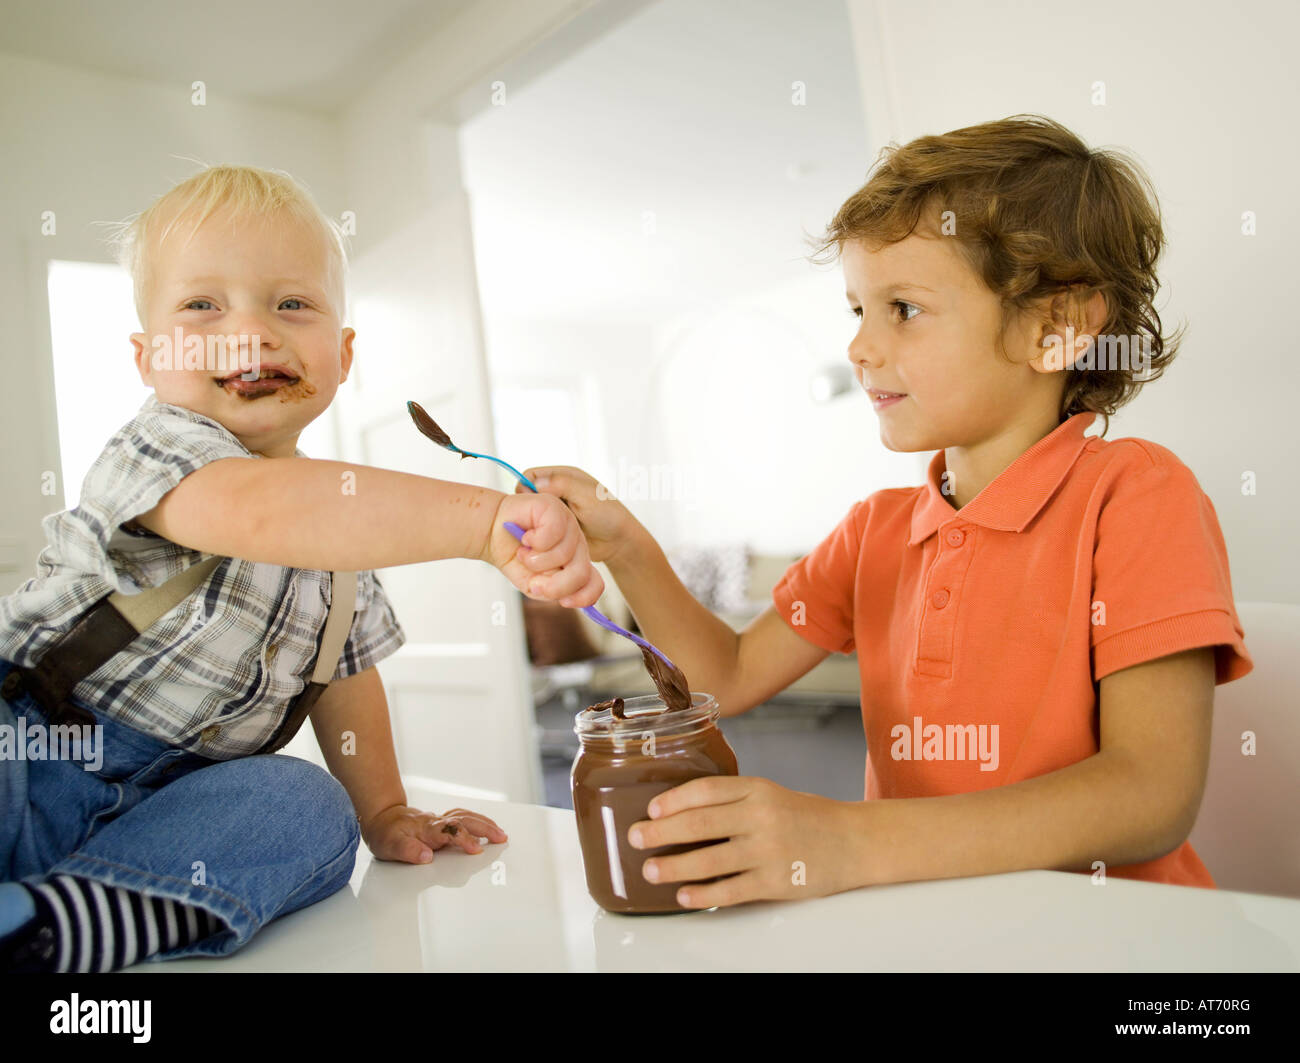 Two boys (4-5), (12-24 months), portrait - Stock Image